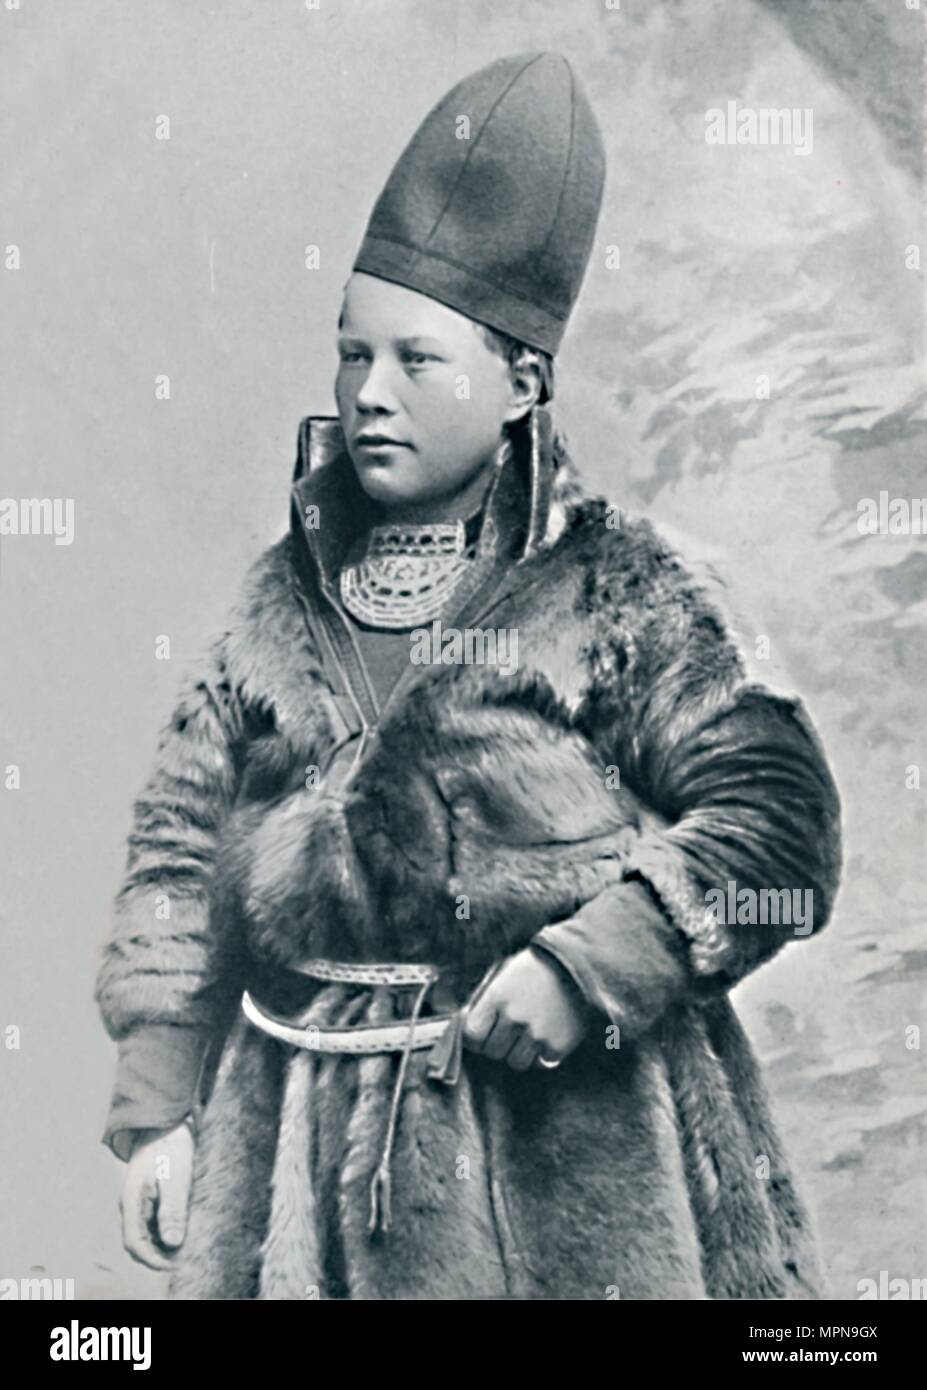 A young Laplander in winter costume, 1912. Artist: Oscar Olsson. - Stock Image